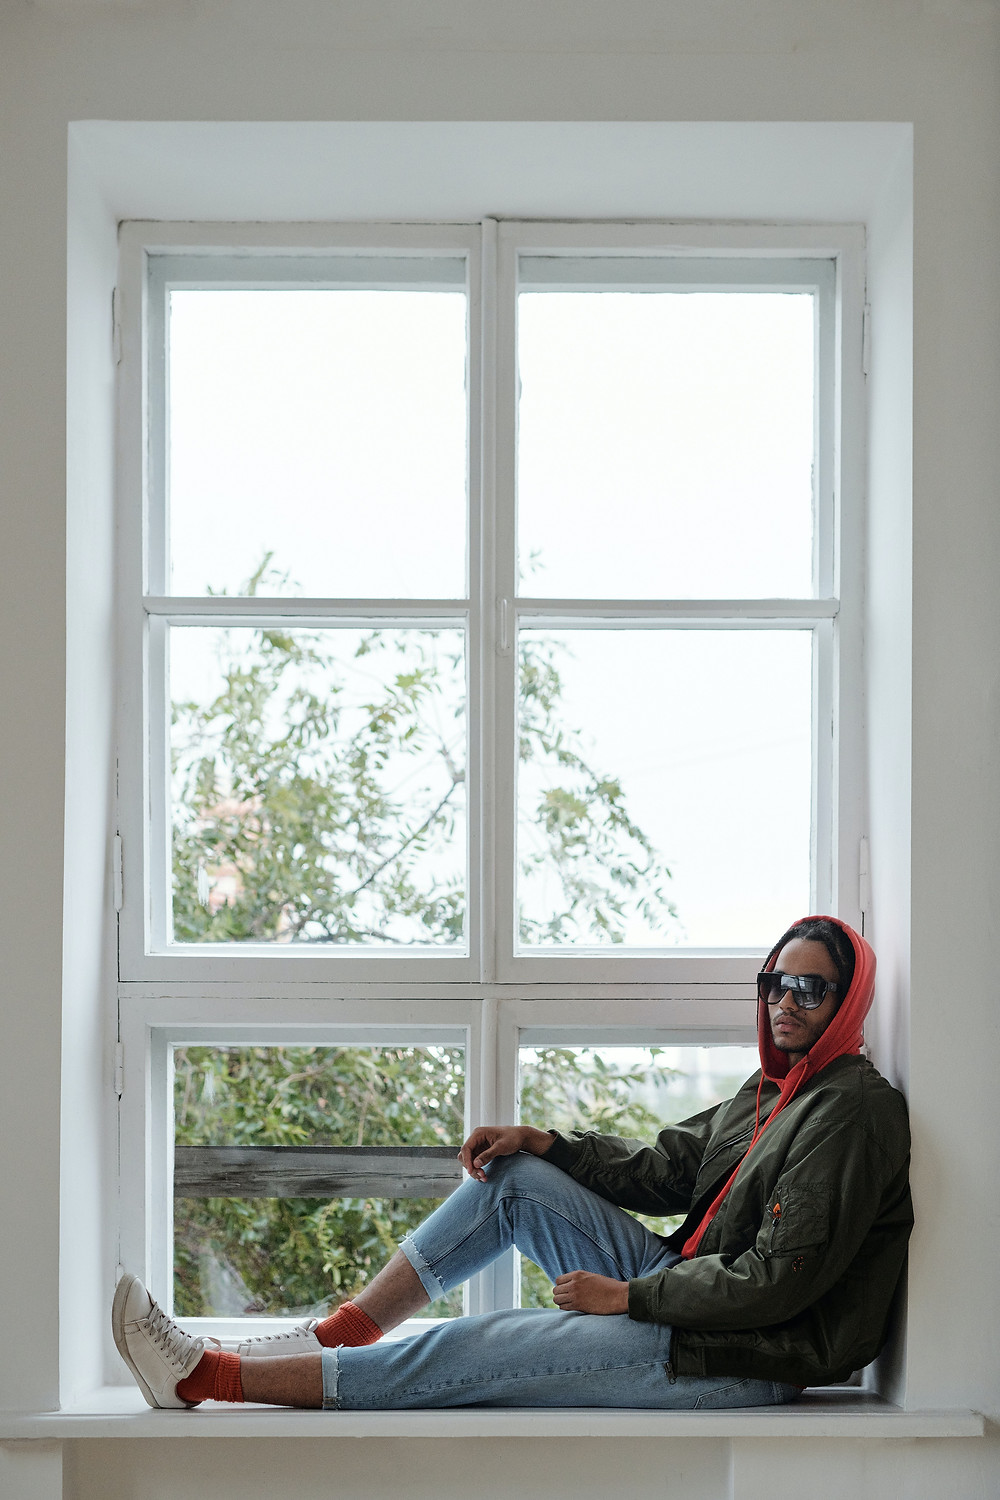 A man wearing a bomber jacket and jeans sits in a window